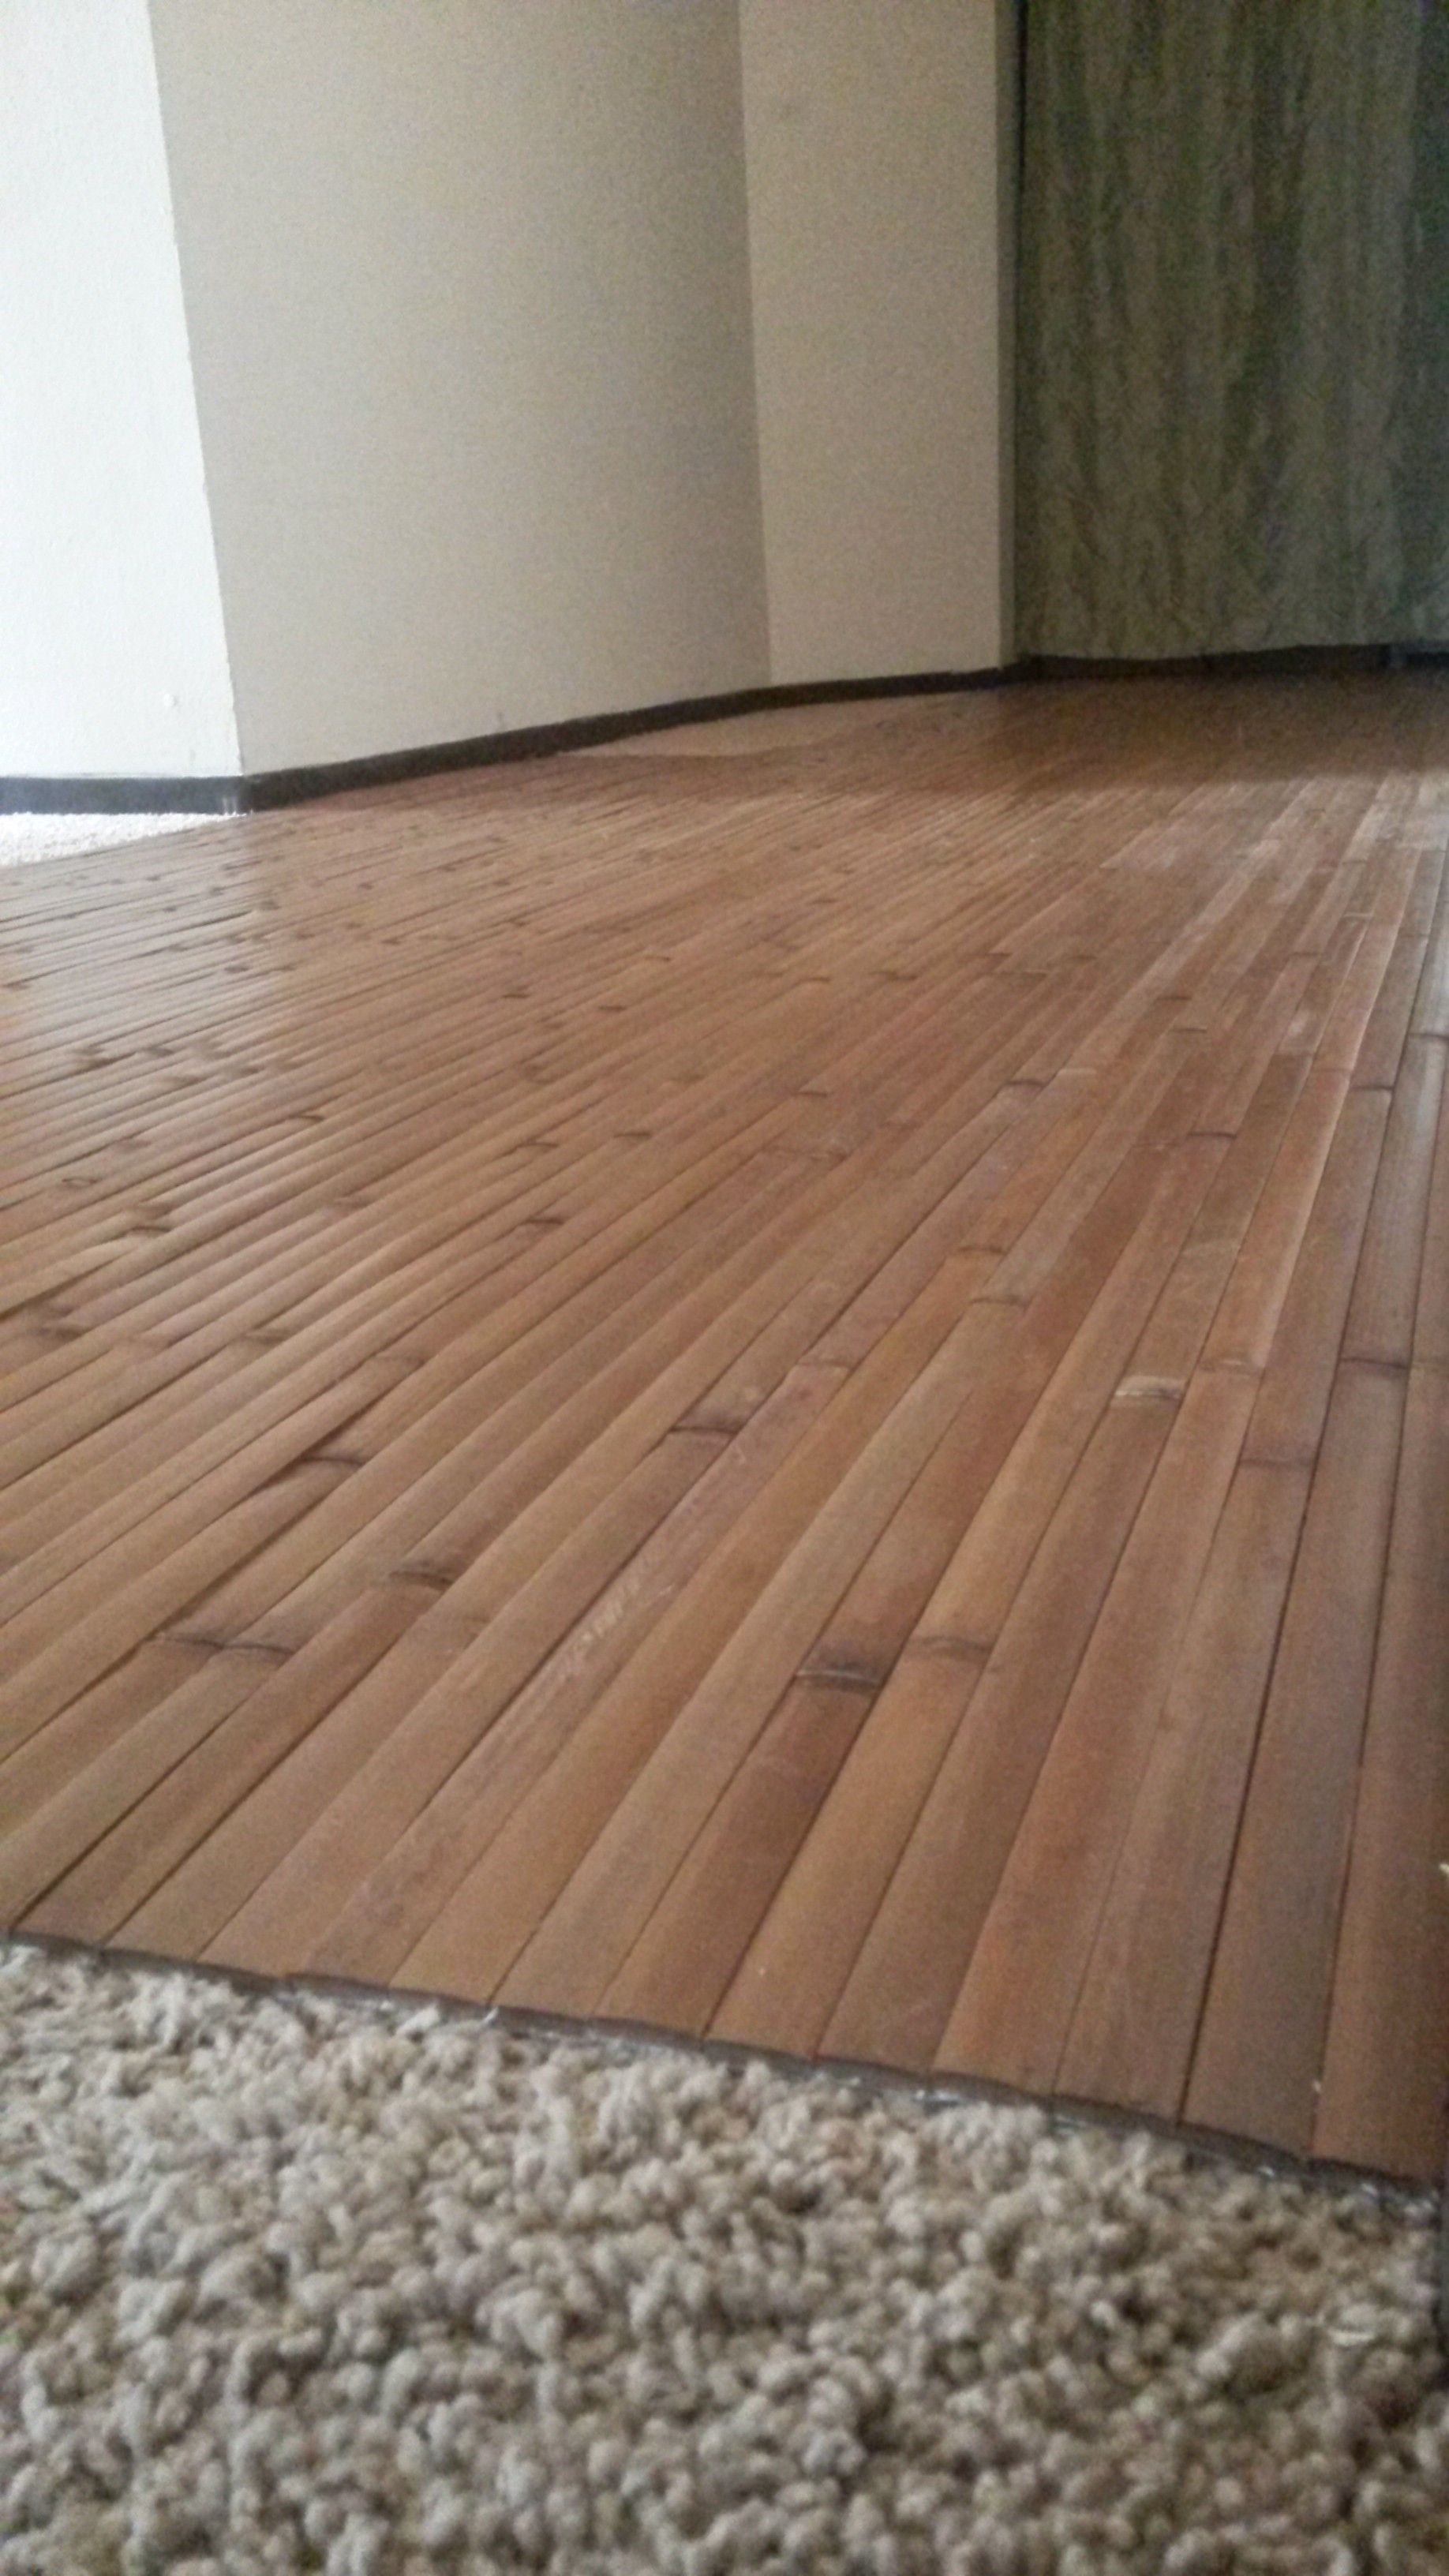 Temporary Wood Flooring For Renters Laying Wood Floors Temporary Flooring Laminate Hardwood Flooring